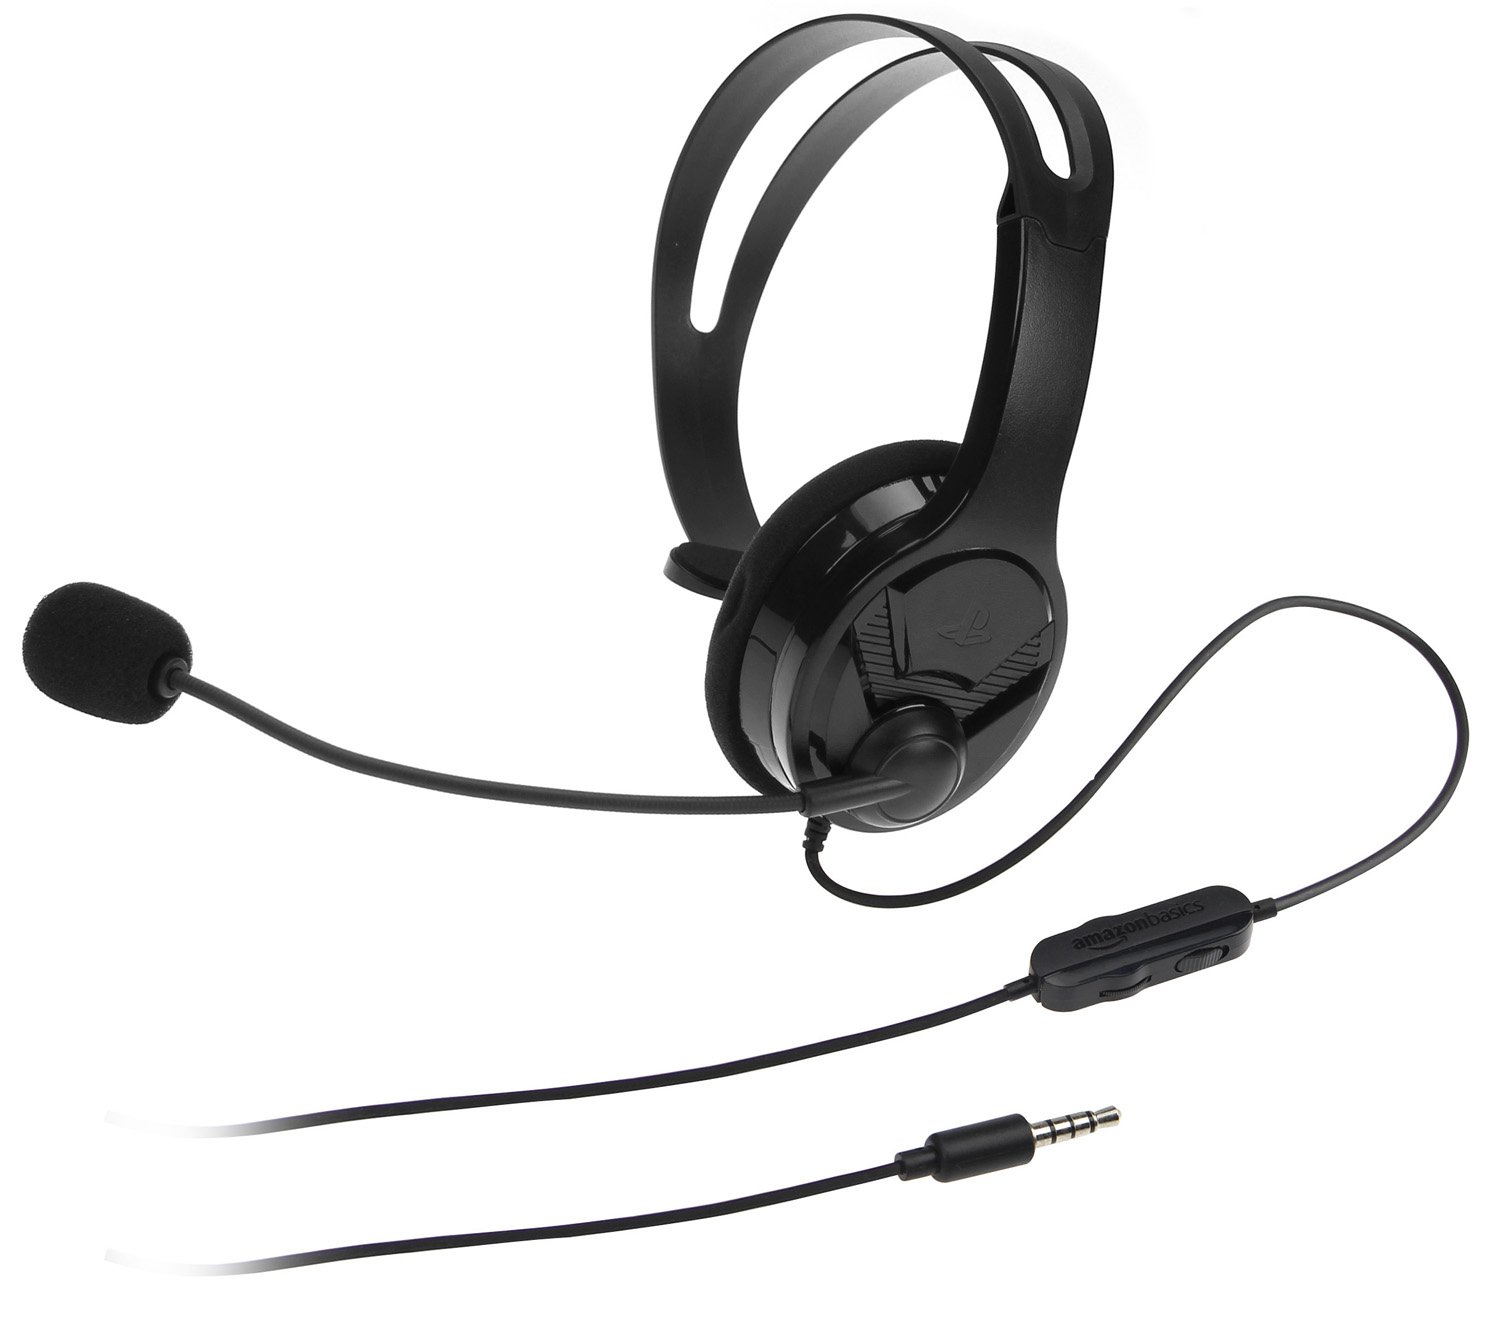 AmazonBasics Gaming Chat Headset for PlayStation 4 with Microphone - 4 Foot Cable, Black by AmazonBasics